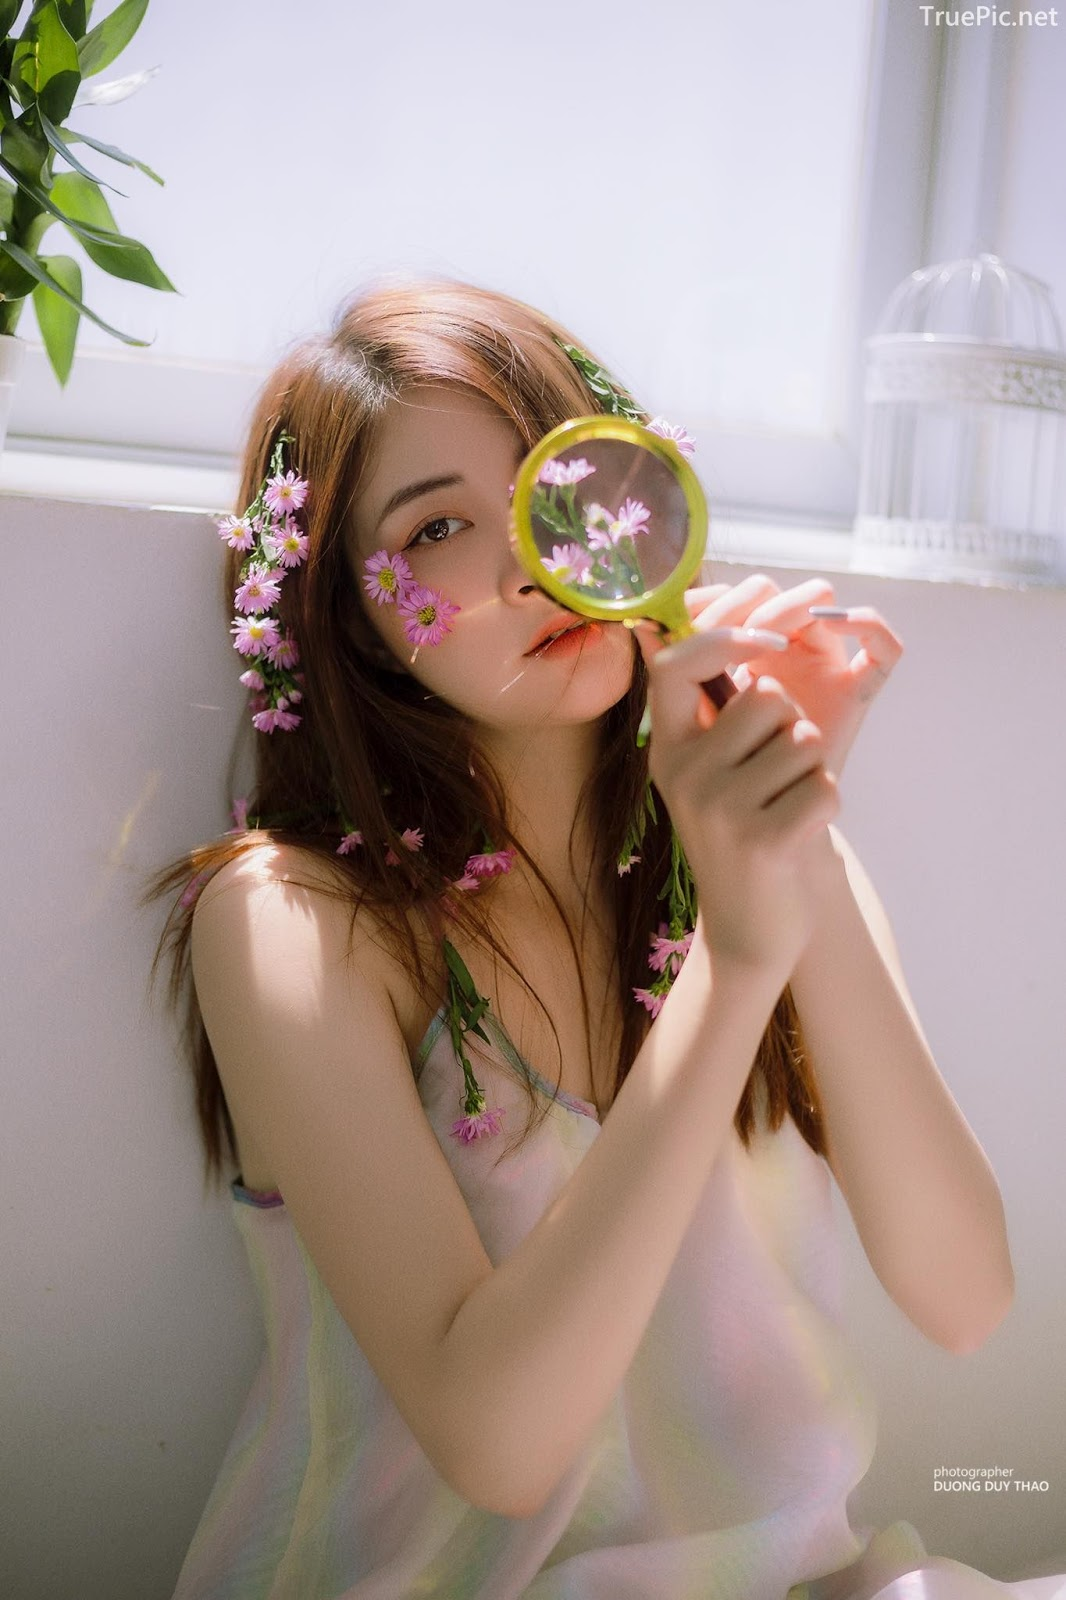 Vietnamese beautiful model Vu Thanh Huong - Fairies purple chrysanthemum - Picture 3